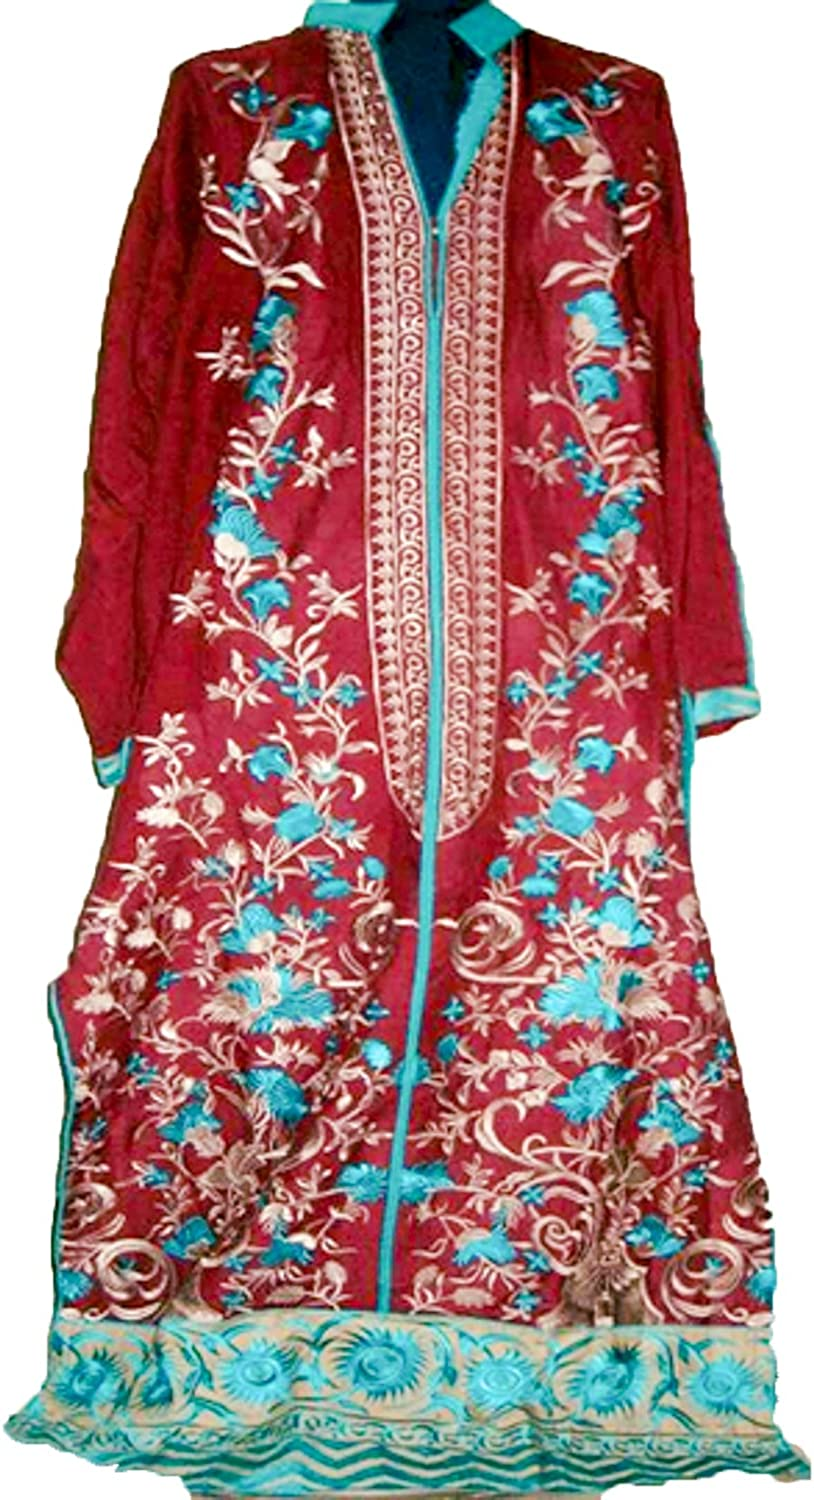 Casual Dresses for Women Fashion 3 Piece Linen Maroon Pakistani Dress, Medium